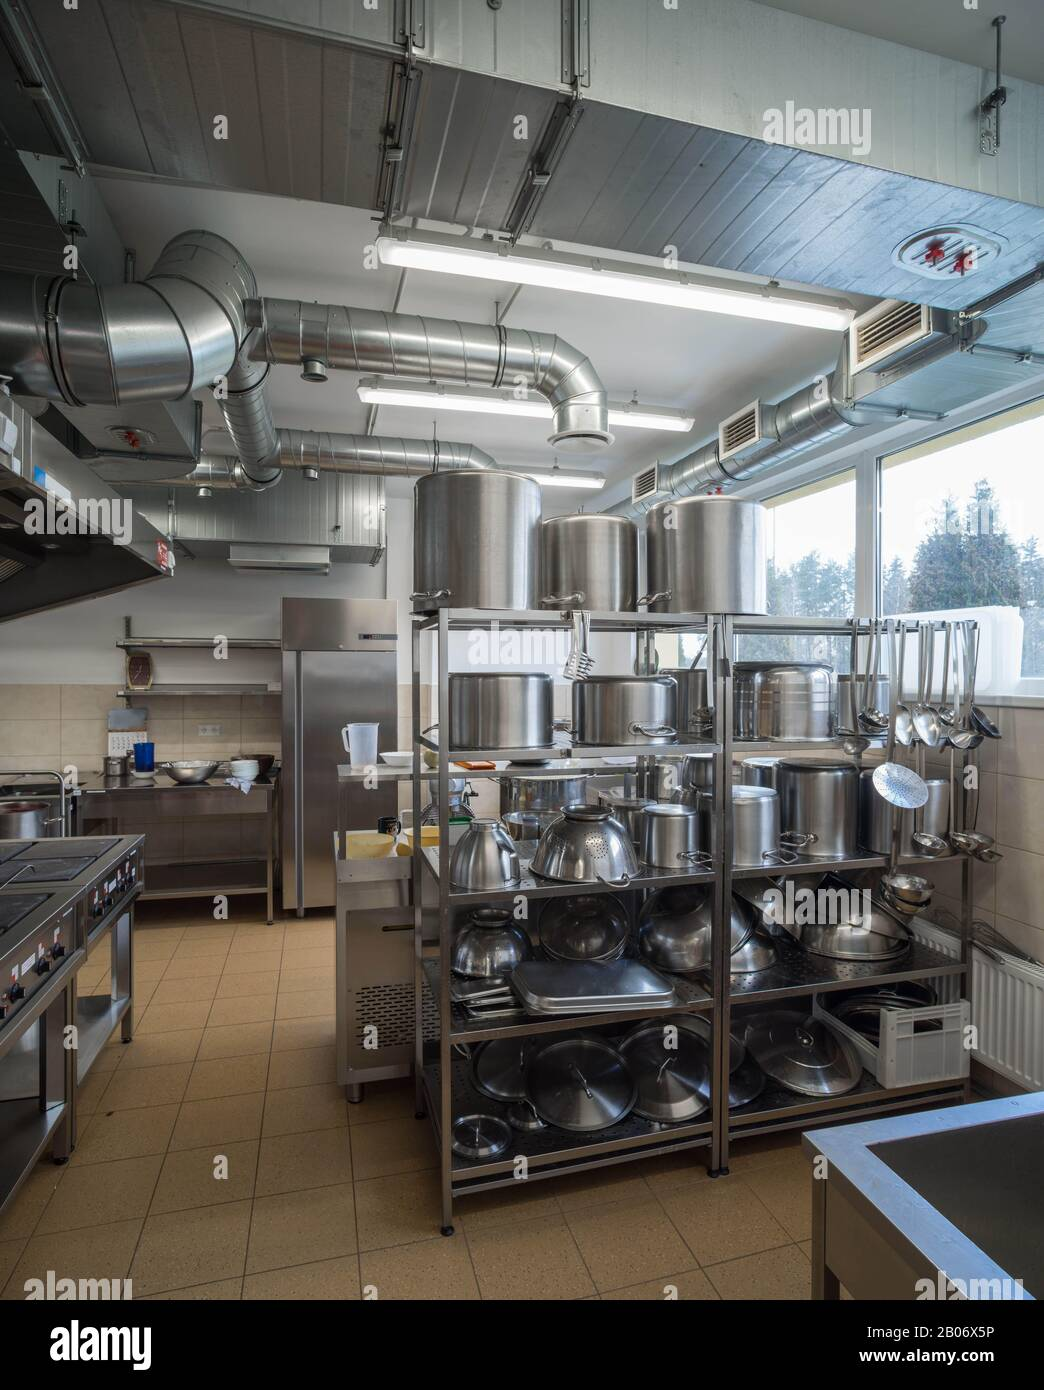 Restaurant Kitchen Equipment Stainless Steel Pots On The Shelves Ventilation System Stock Photo Alamy